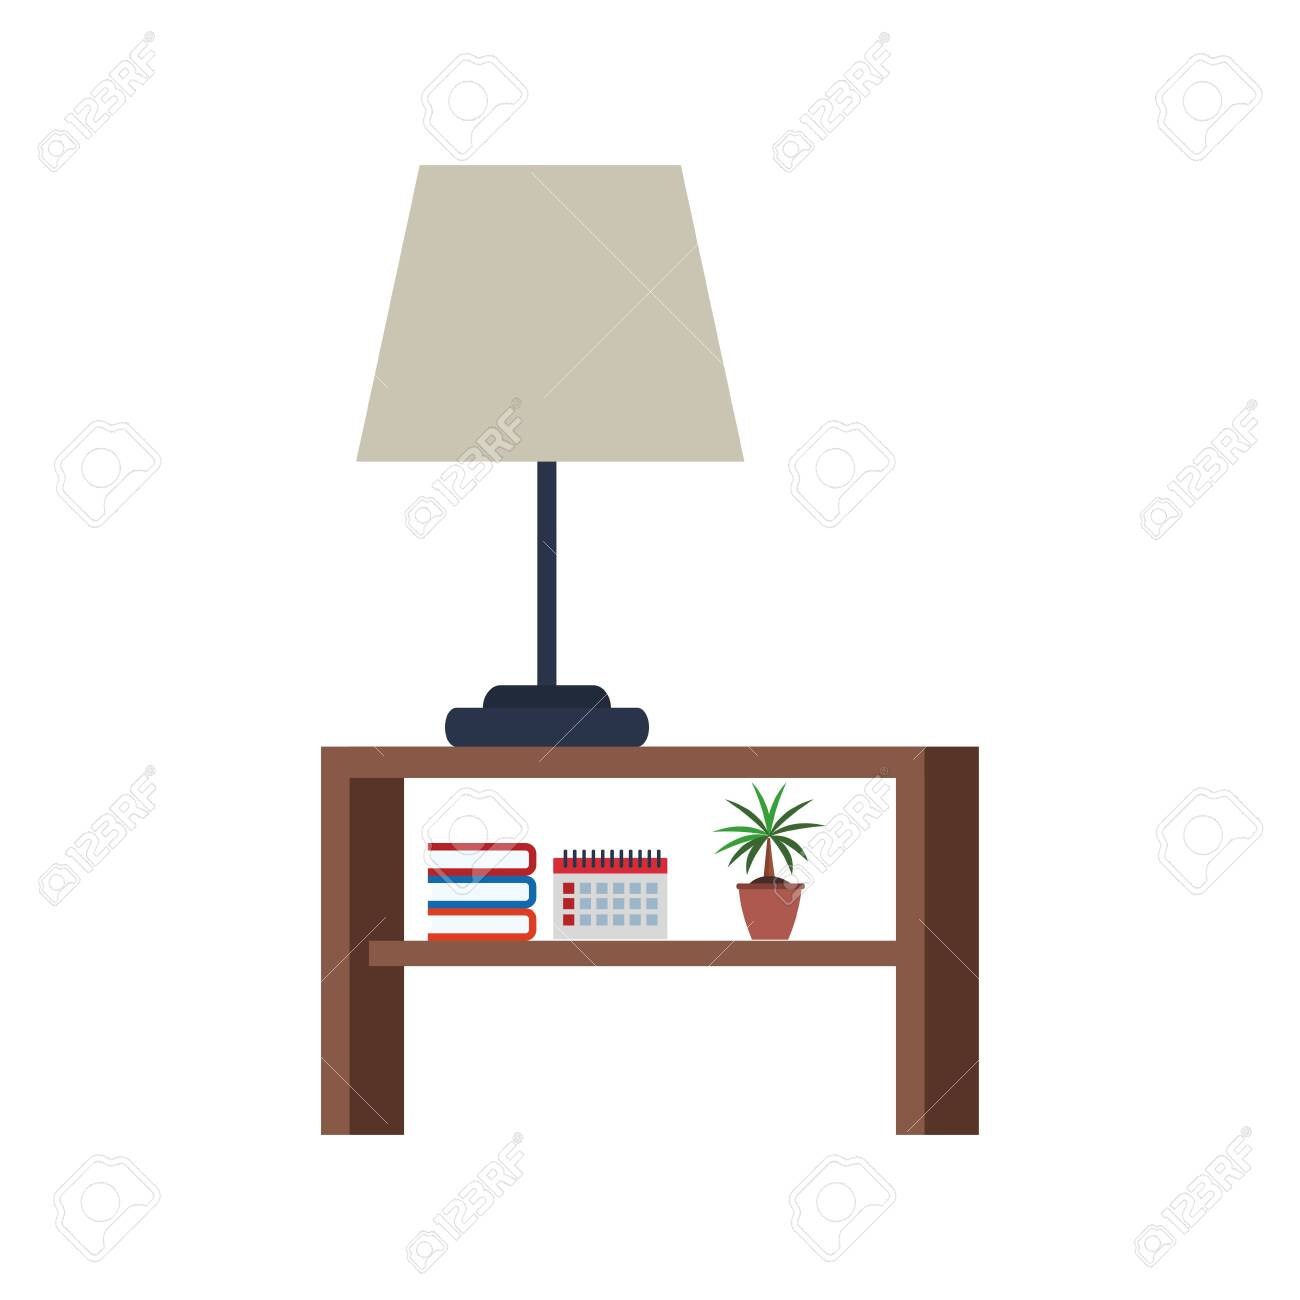 Nightstand With Lamp And Books Over White Background Vector Royalty Free Cliparts Vectors And Stock Illustration Image 139215946